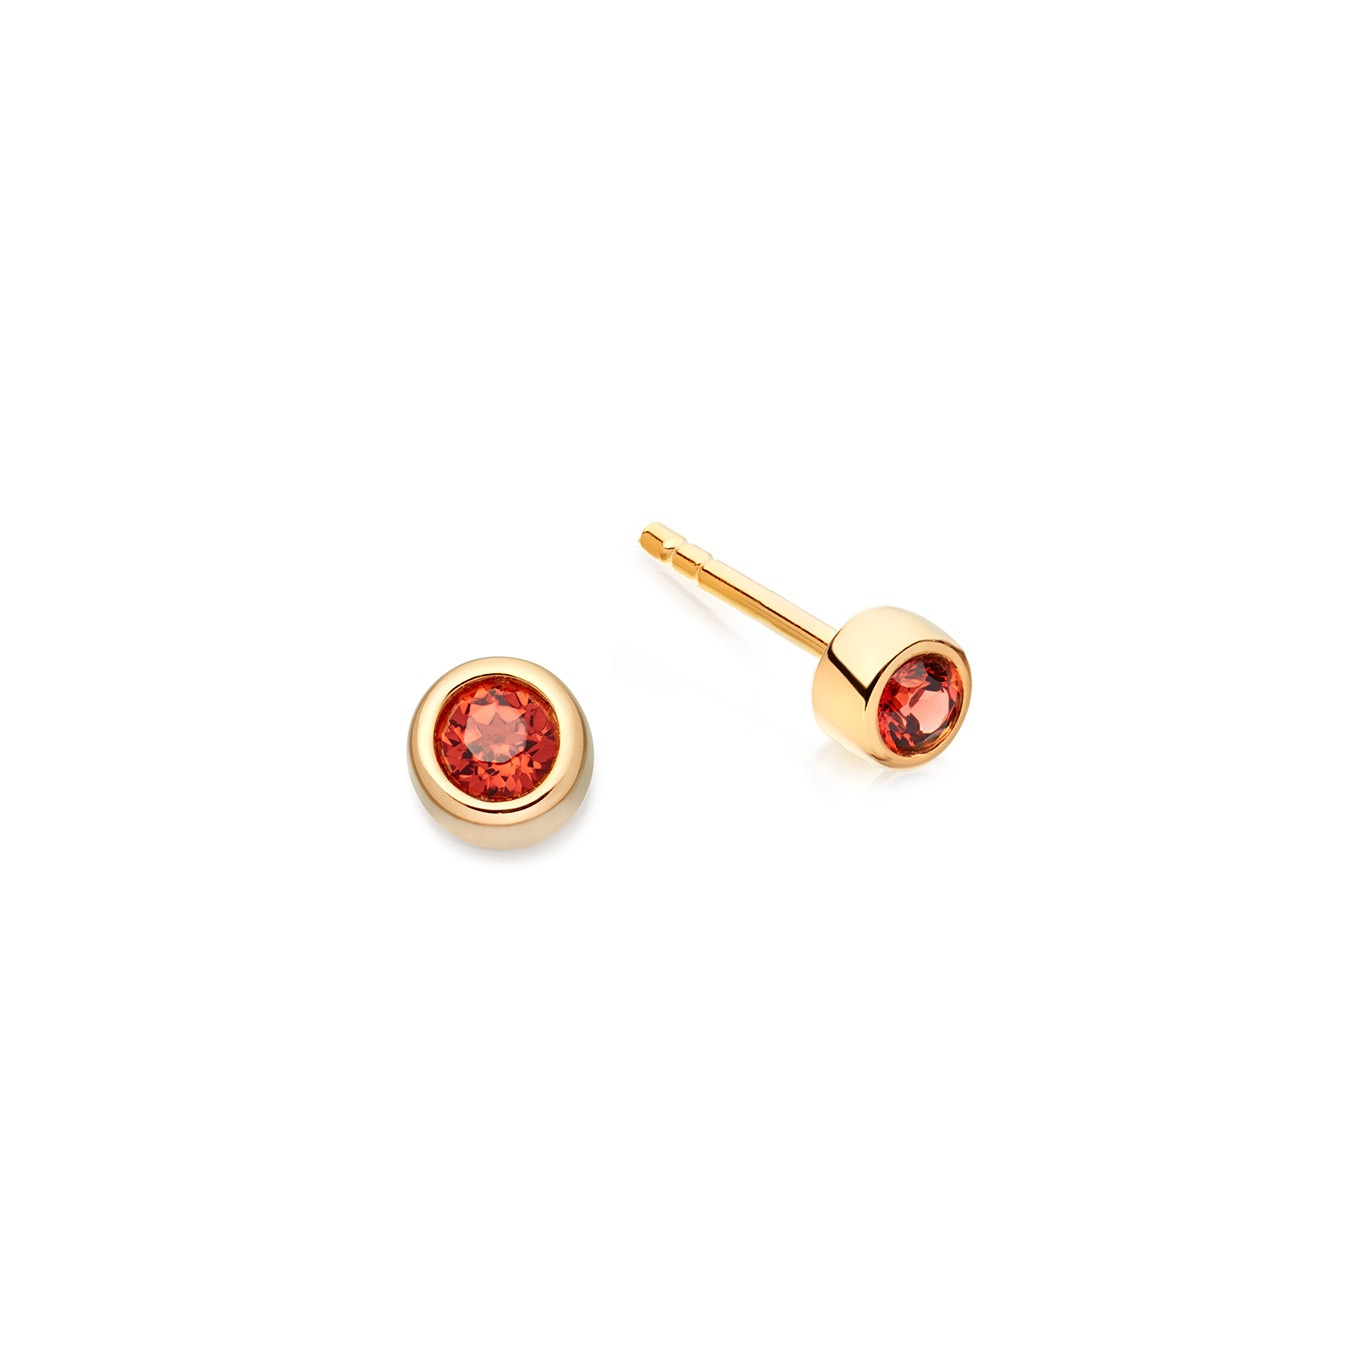 Mini Garnet Stilla Stud Earrings